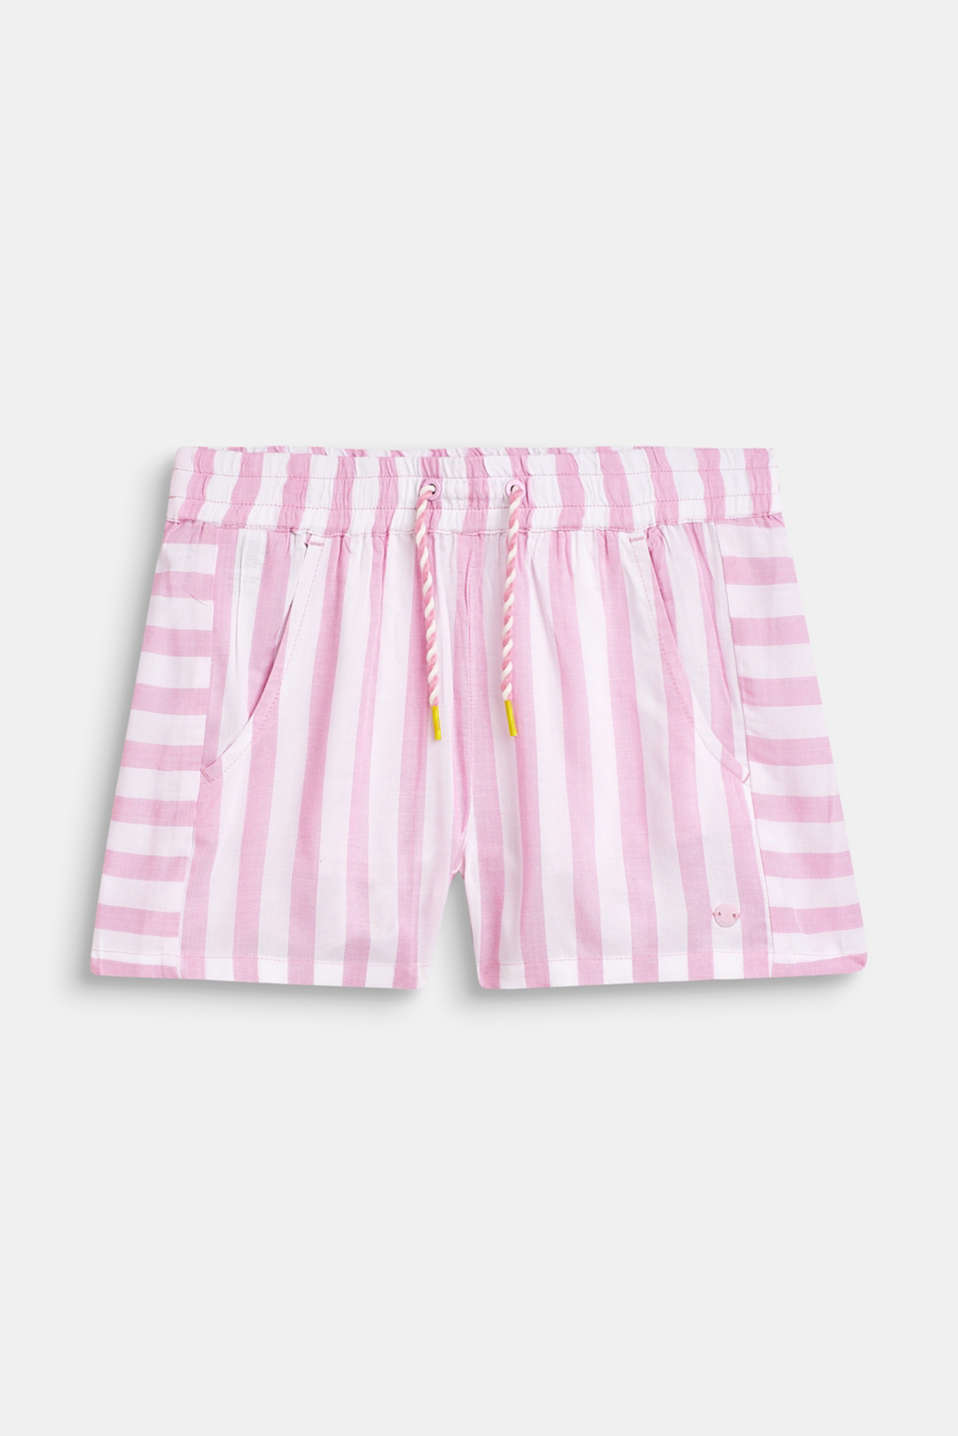 Esprit - Striped shorts, 100% viscose